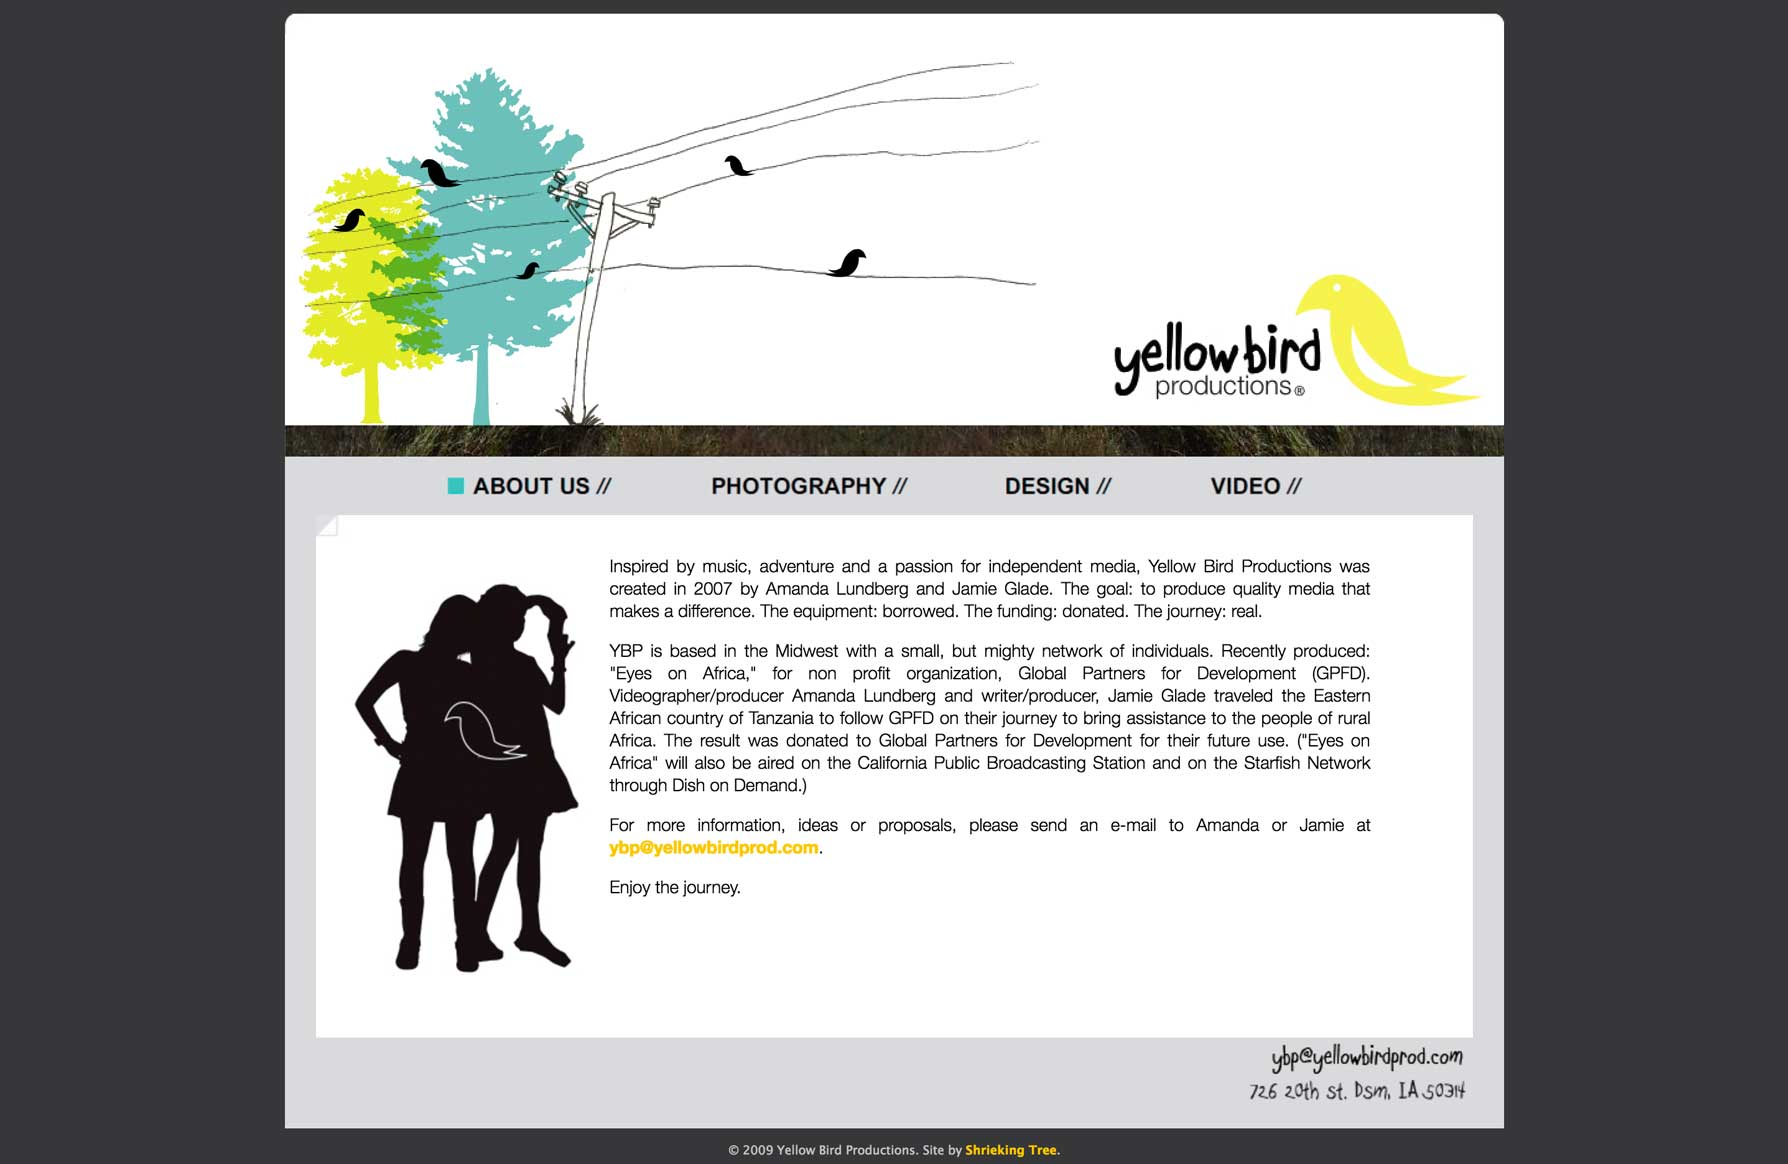 Yellow Bird Productions